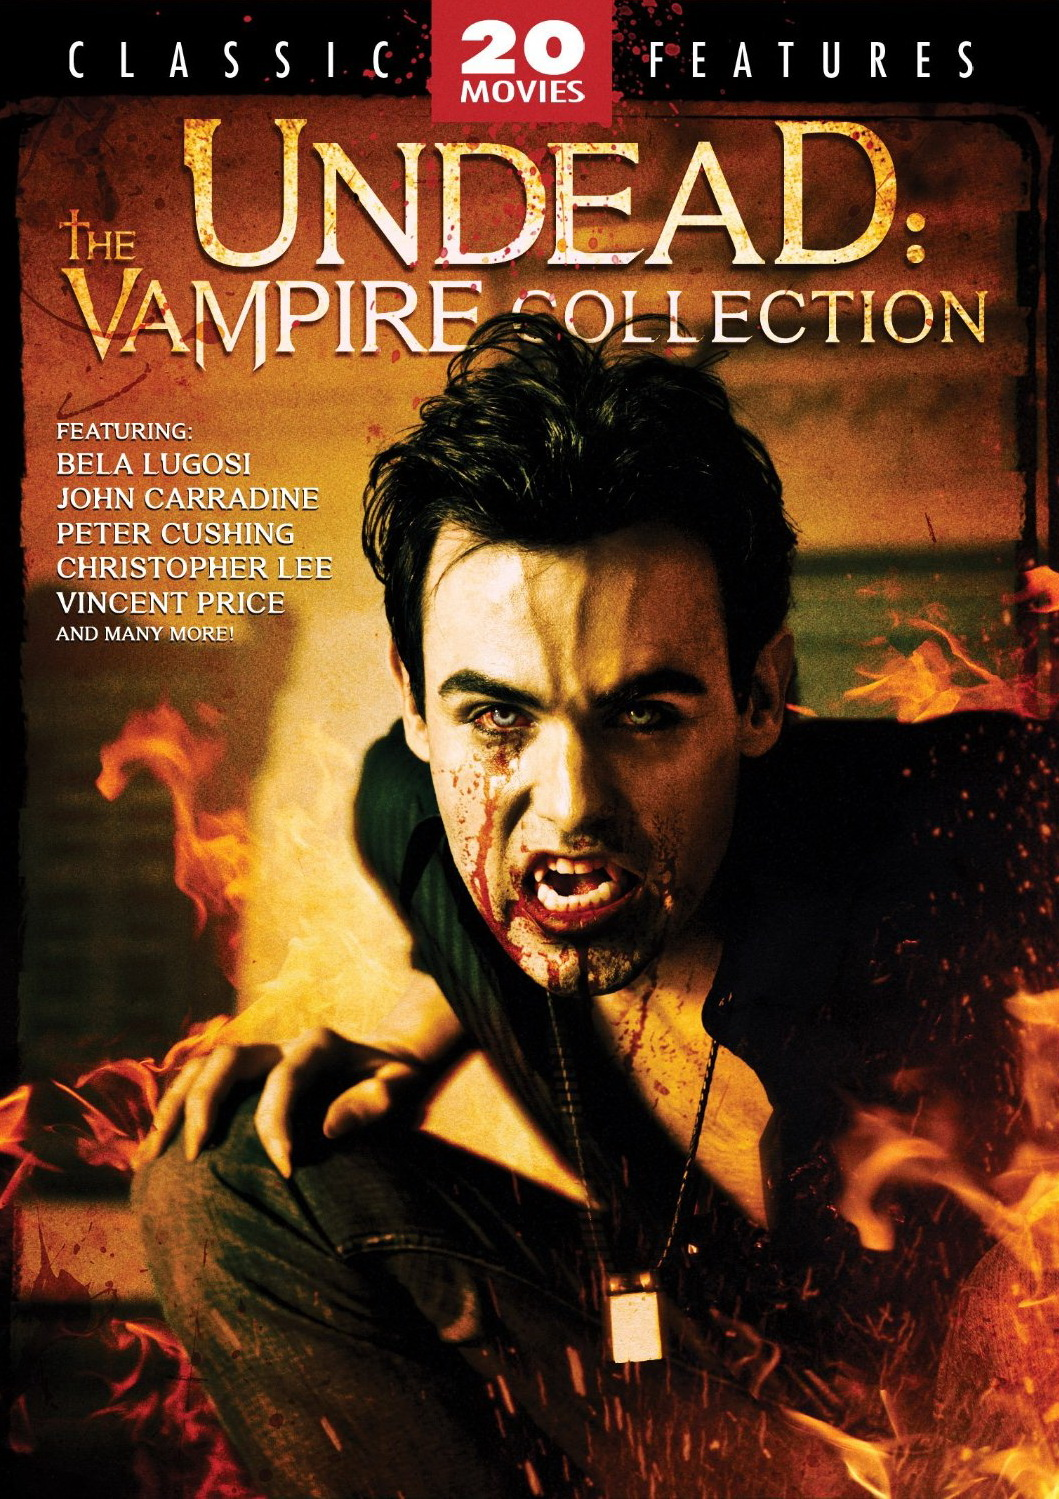 horrible%2Bsexy%2Bvampire 6f1c9 filmesterror1 We noticed the soundtrack of horror films like sounds ...